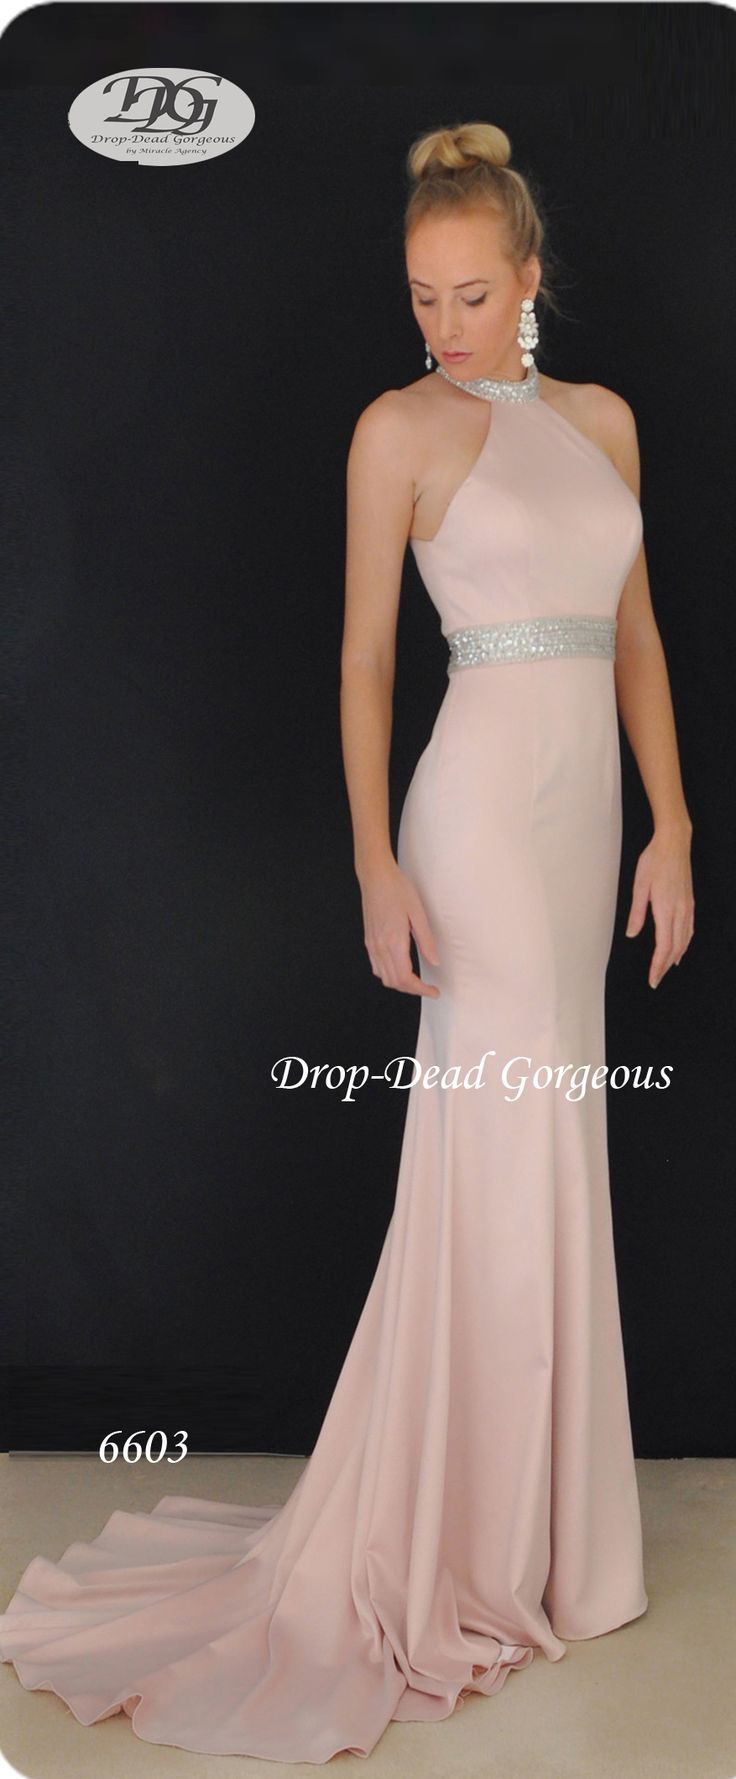 Drop-Dead Gorgeous 2016 Collection Cleo Neck Satin gown with handsewn beaded embelishments  #schoolformal  #evening #satin #balldress #DropDeadGorgeous #Miracleagency  www.miracleagency.net